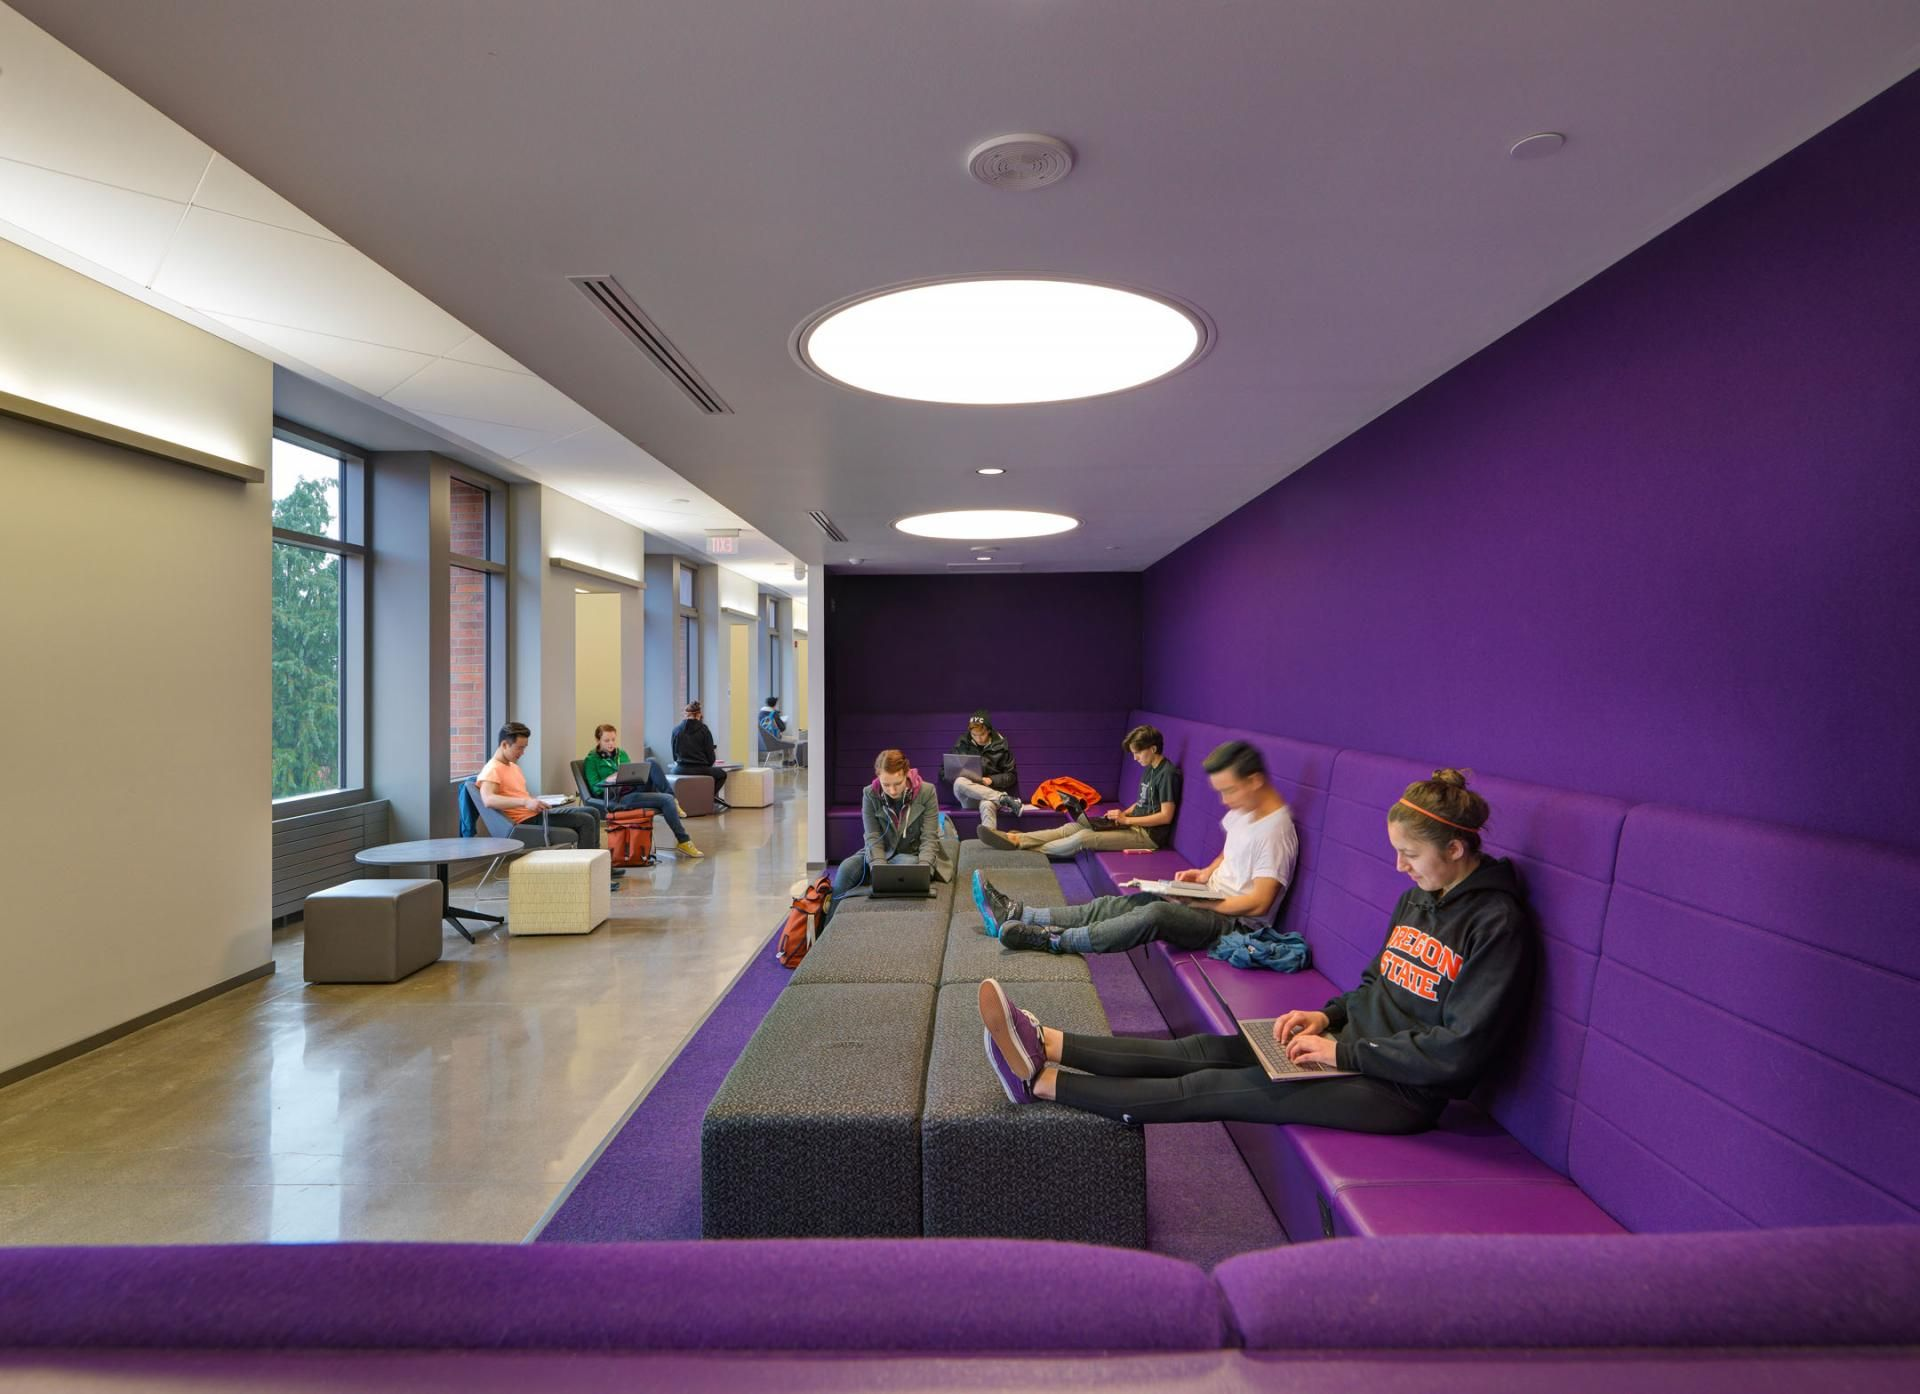 students sitting on comfortable couches while studying Johnson